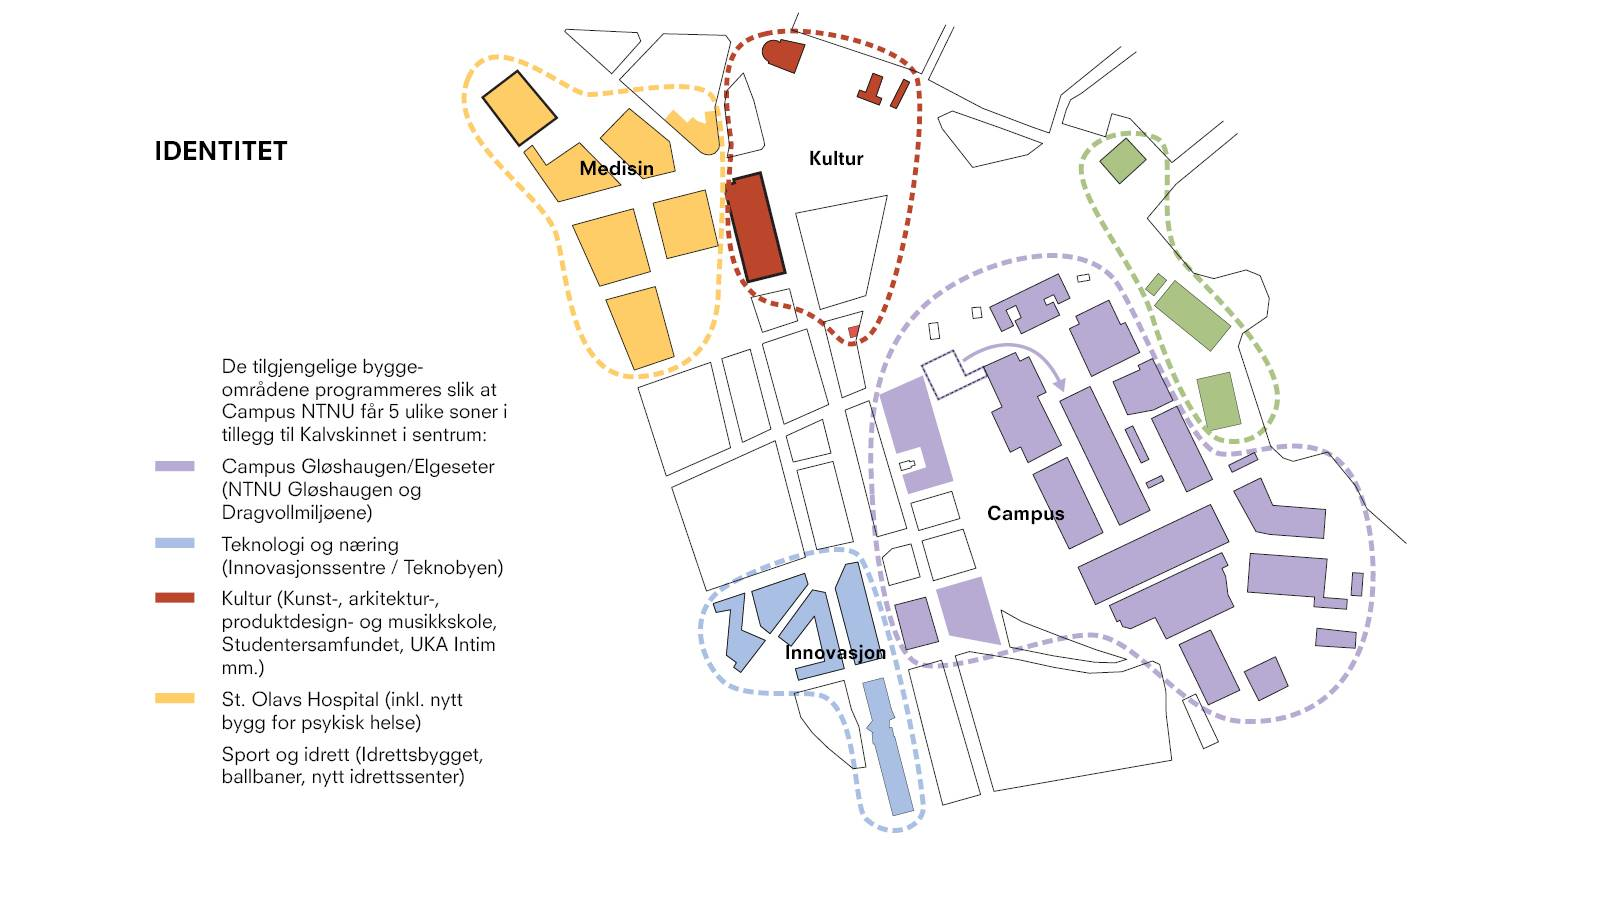 IDENTITIES - NTNU – More Park, More City! - SPOL Architects